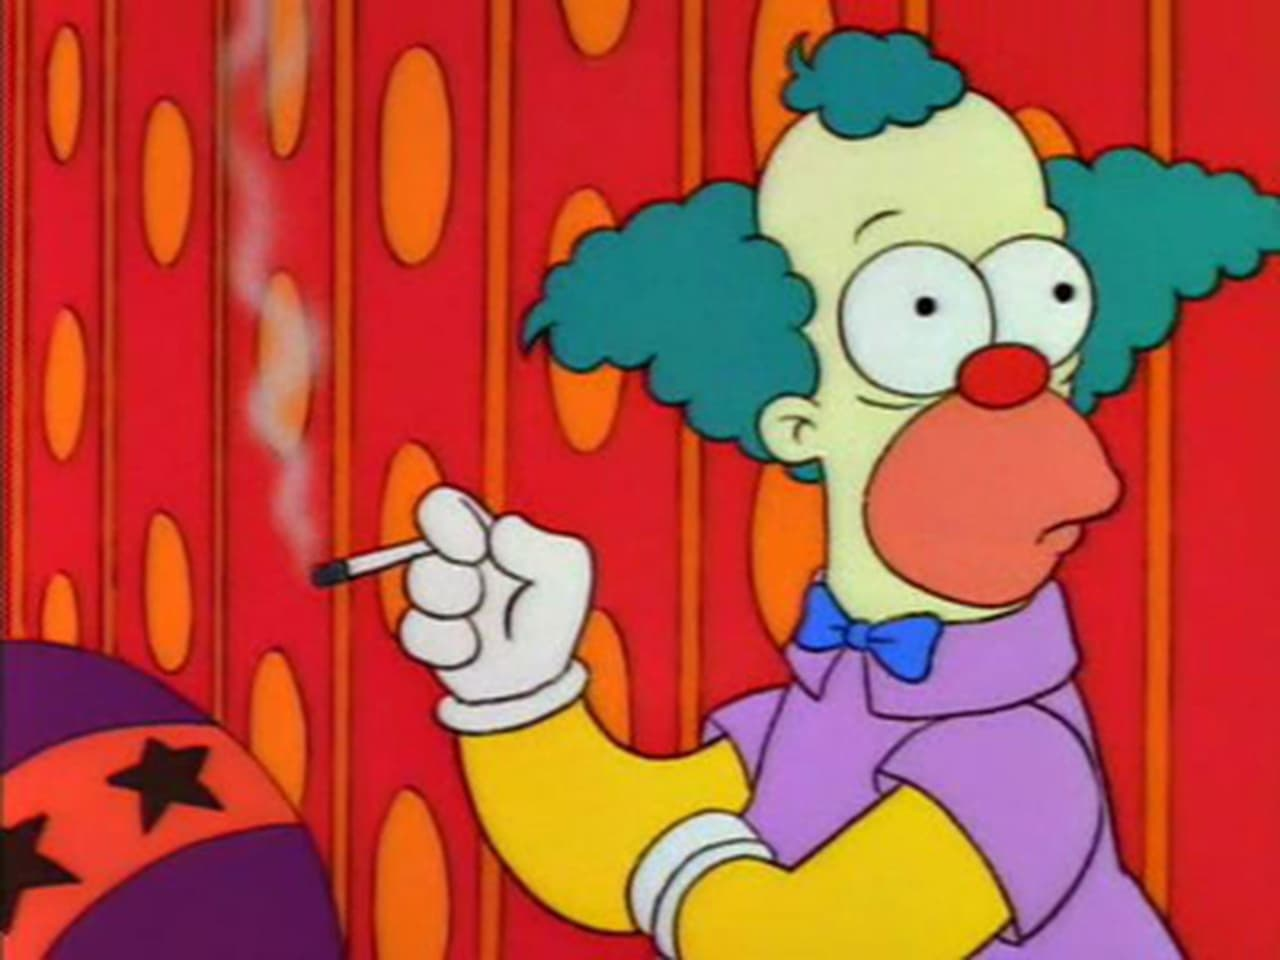 The Simpsons - Season 4 Episode 22 : Krusty Gets Kancelled